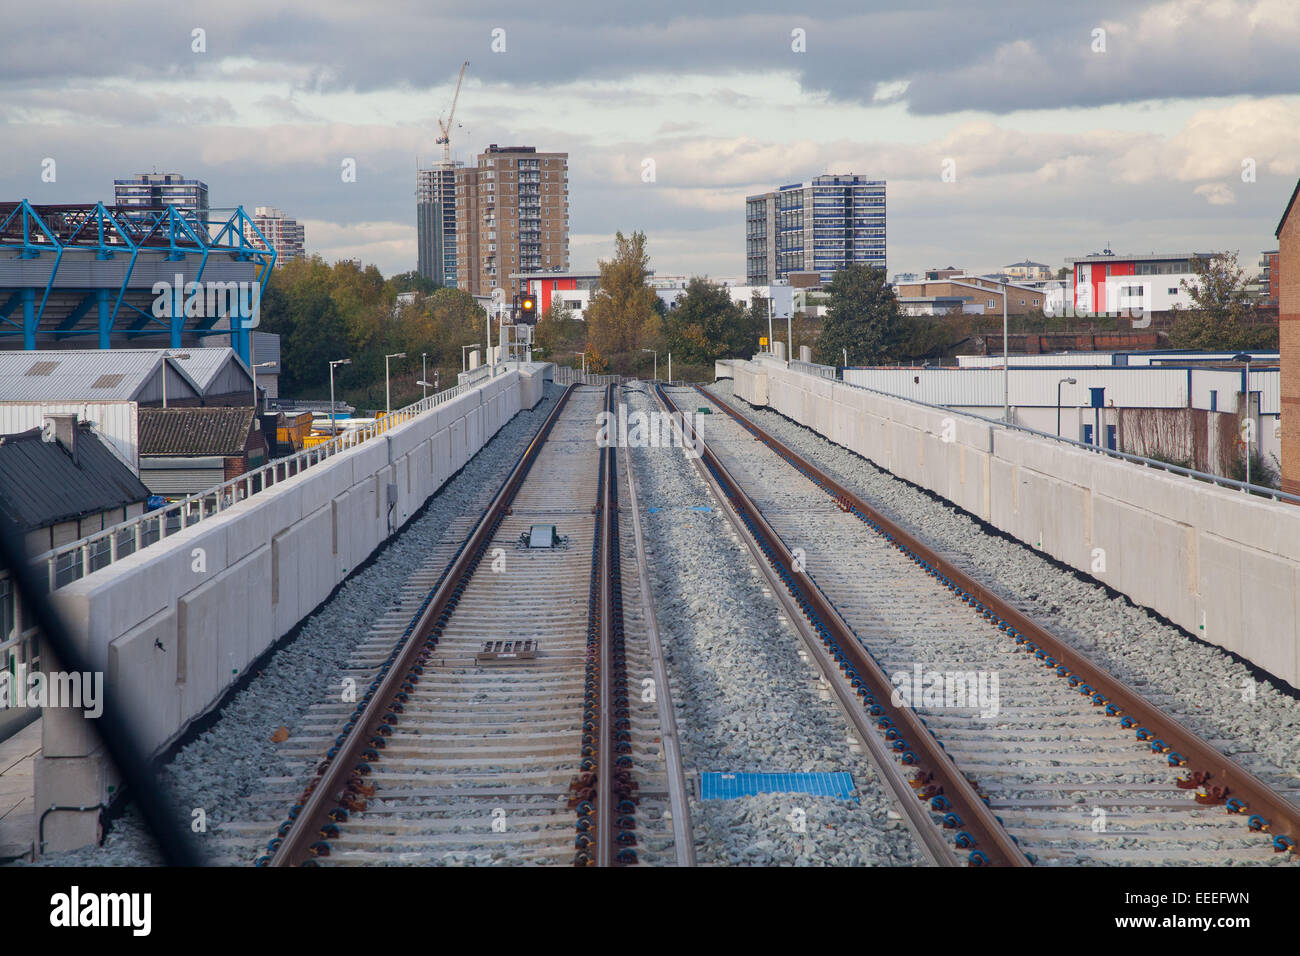 New track between Old Kent Road junction and Surrey Quays on the Overground network - Stock Image